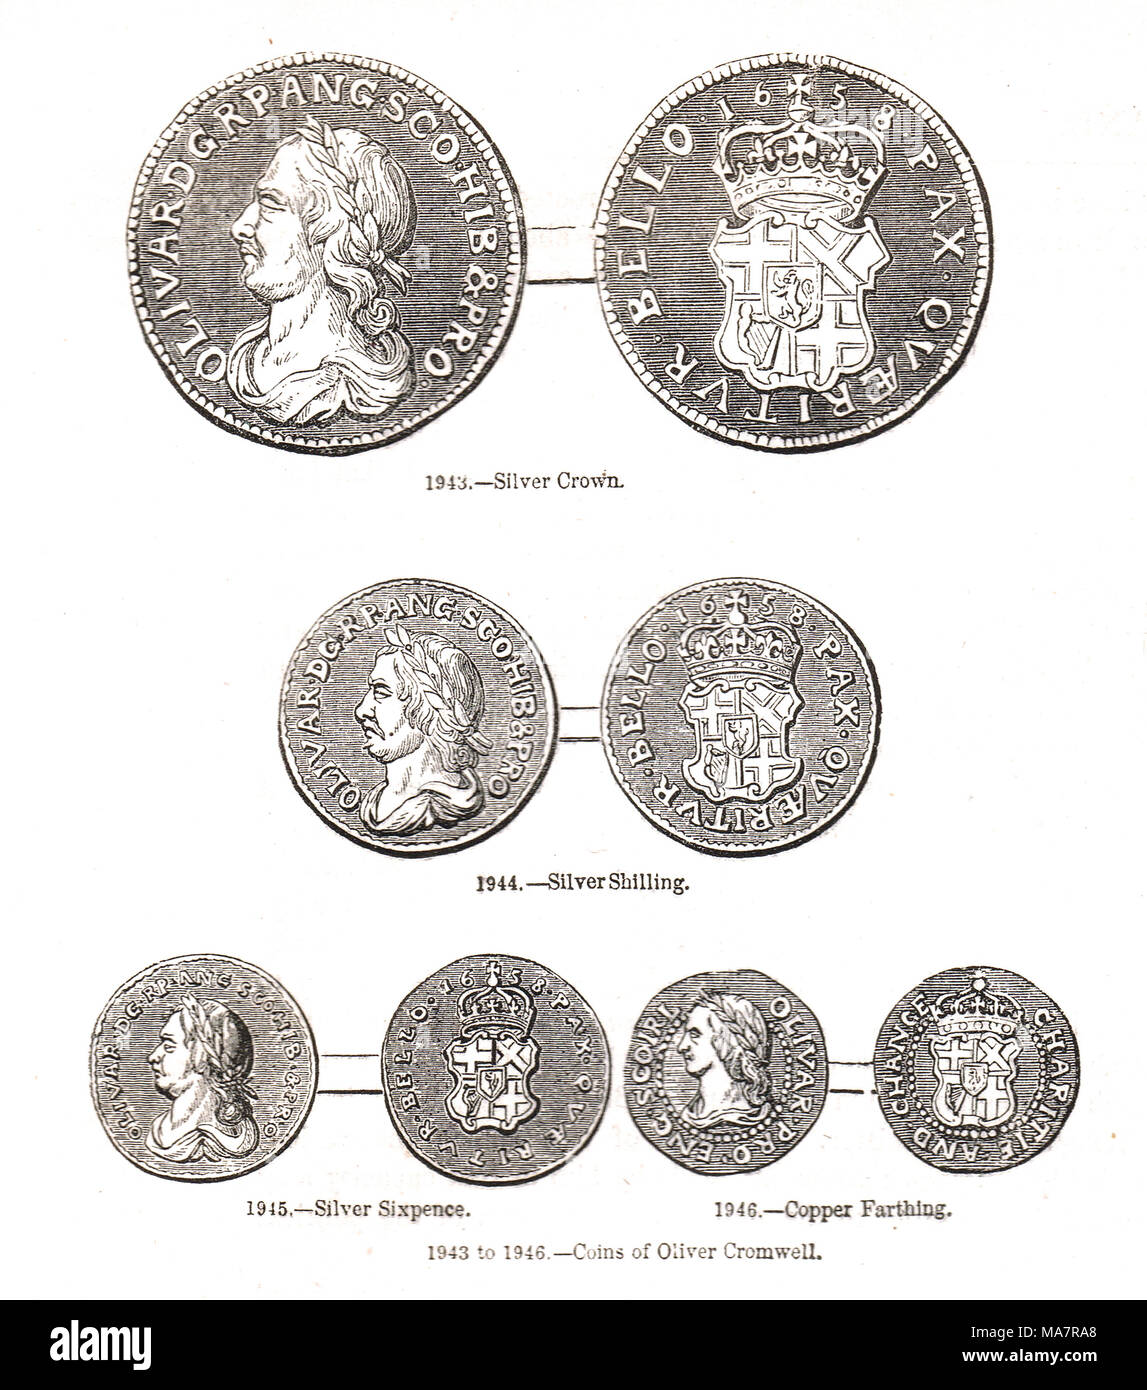 Coins of the time of Oliver Cromwell, currency of the Commonwealth of England, Scotland. and Ireland - Stock Image